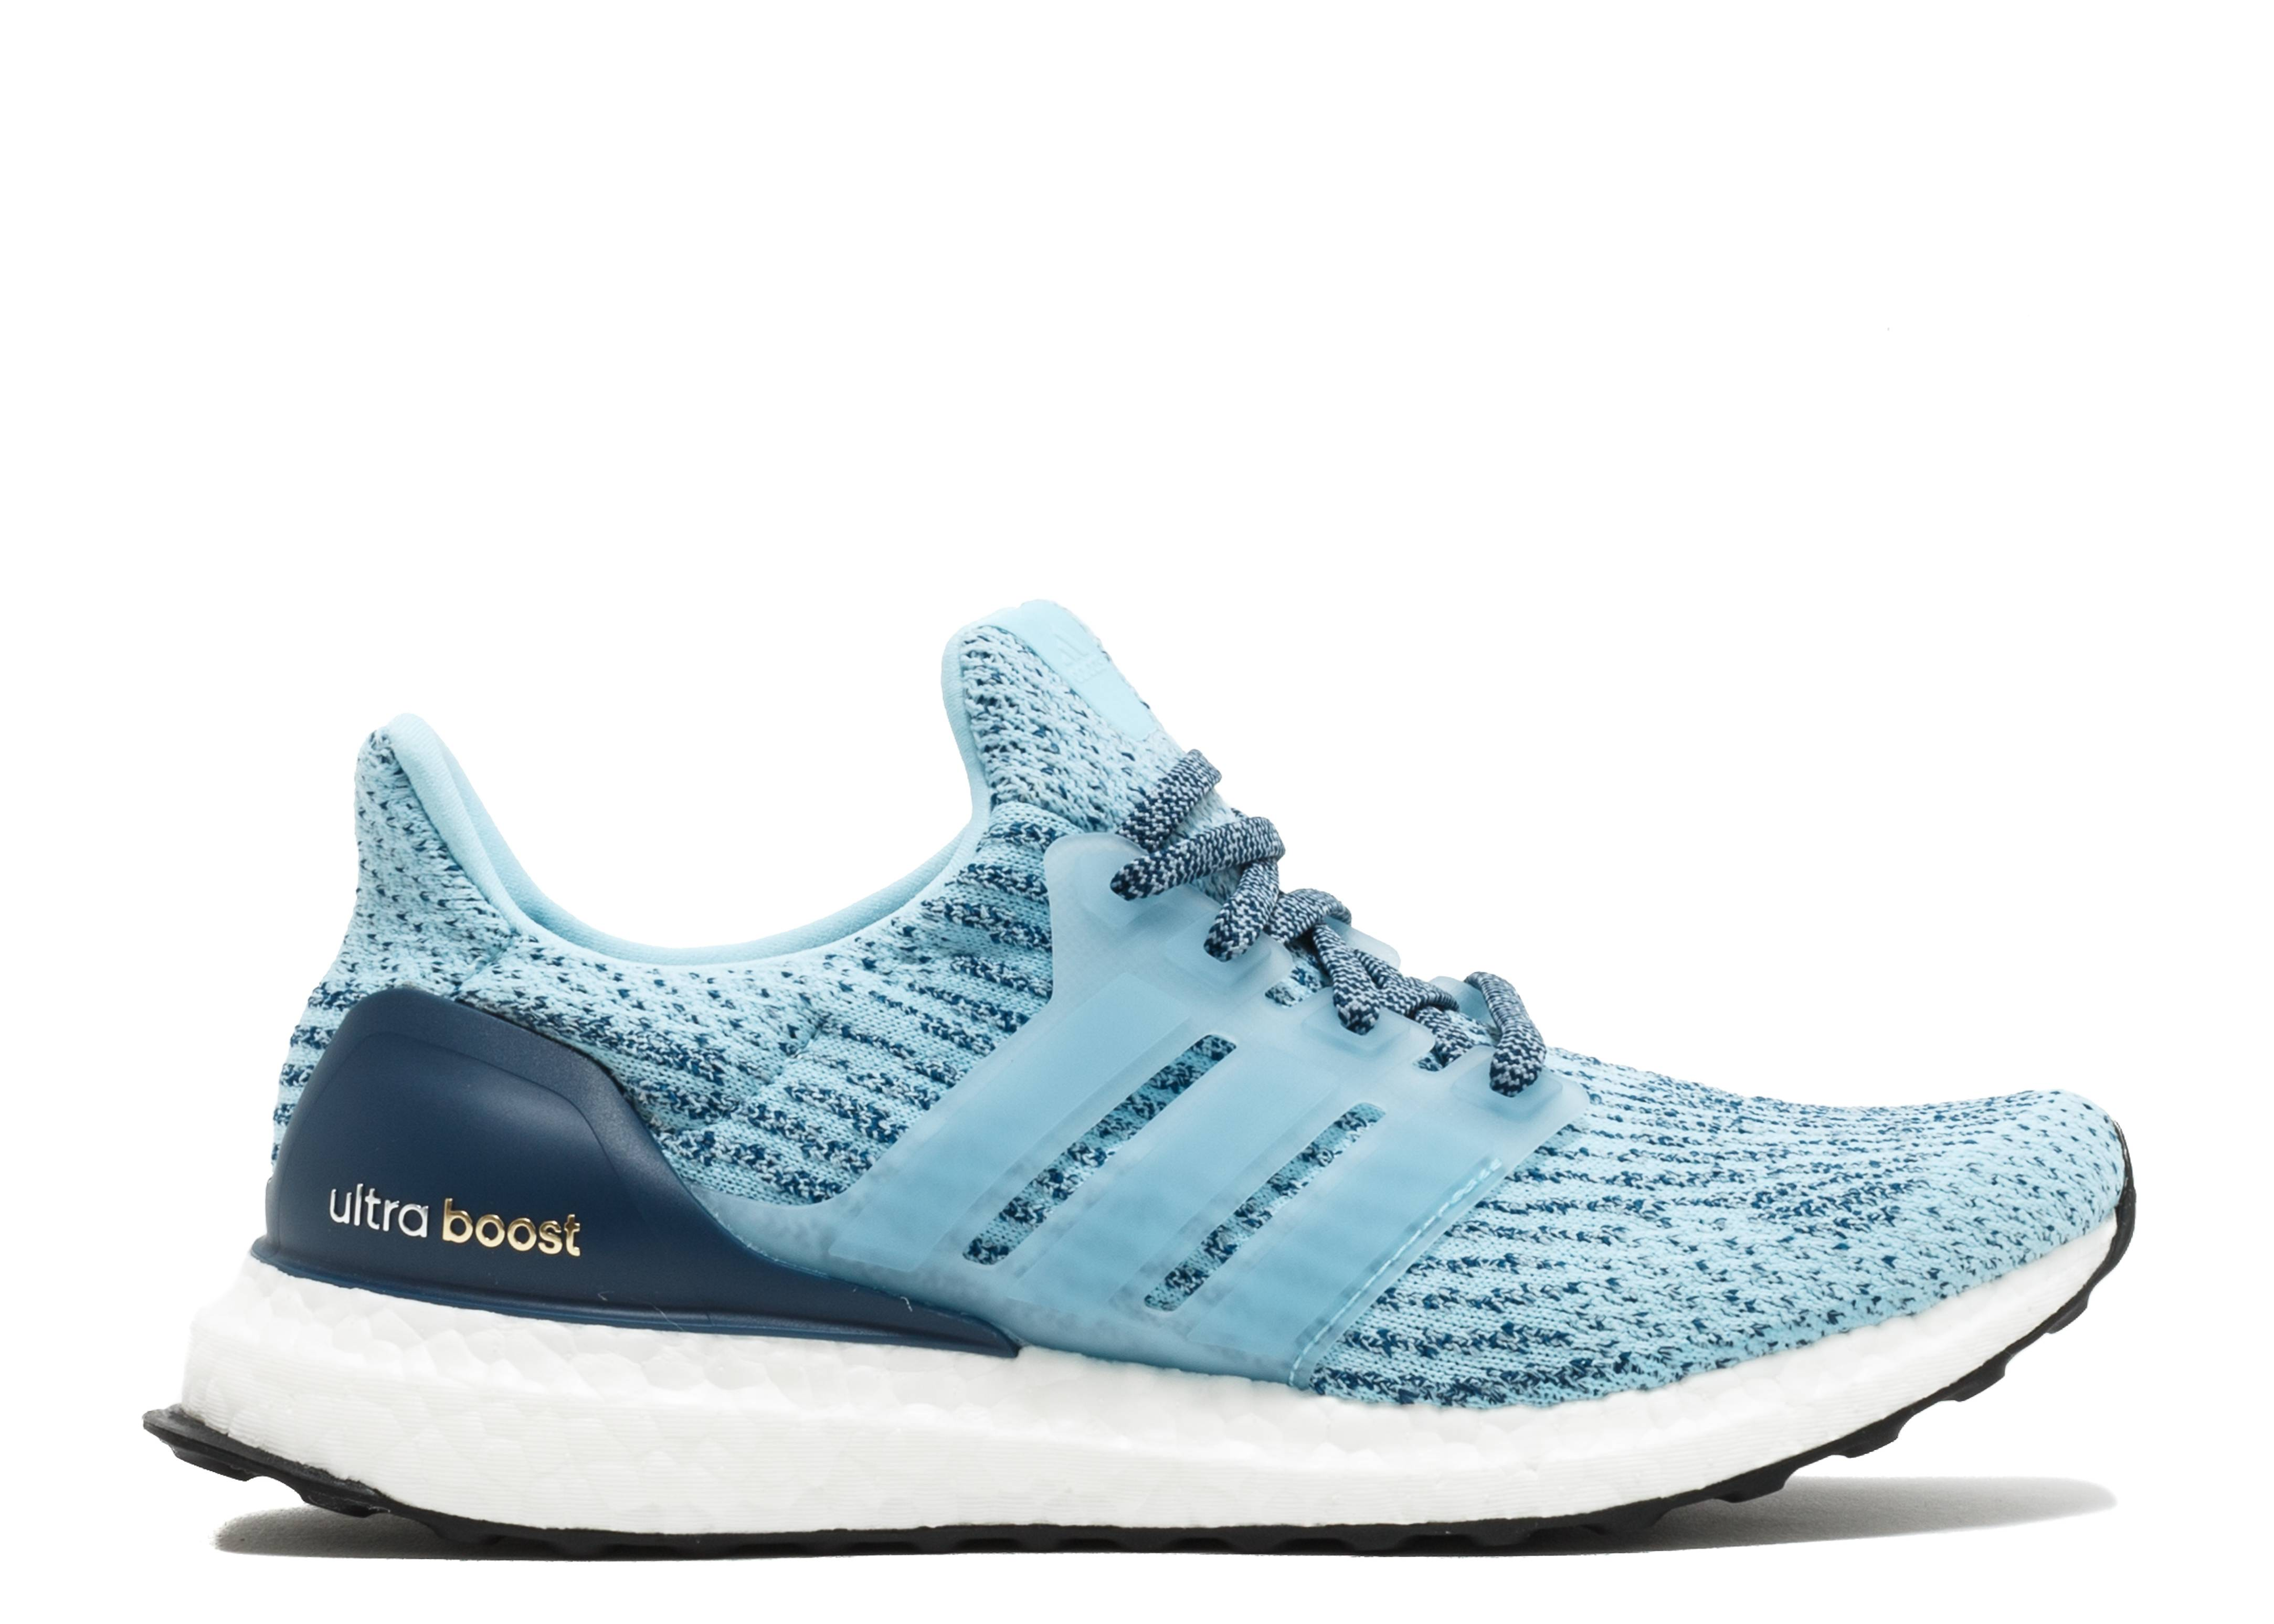 Ultraboost W - Adidas - s82055 - blue/white